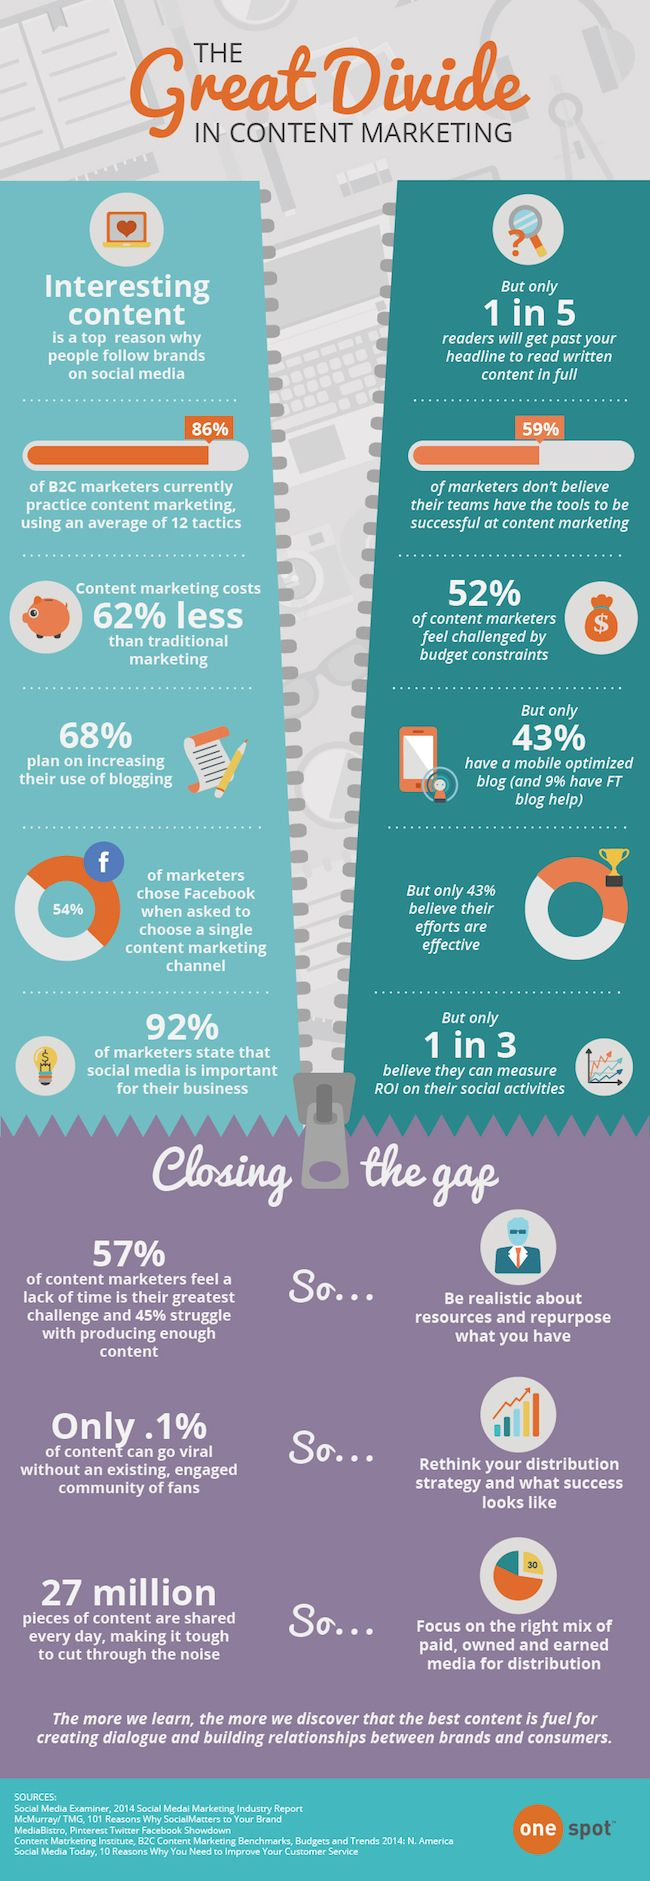 The Great Divide in Content Marketing [Infographic], via @HubSpot